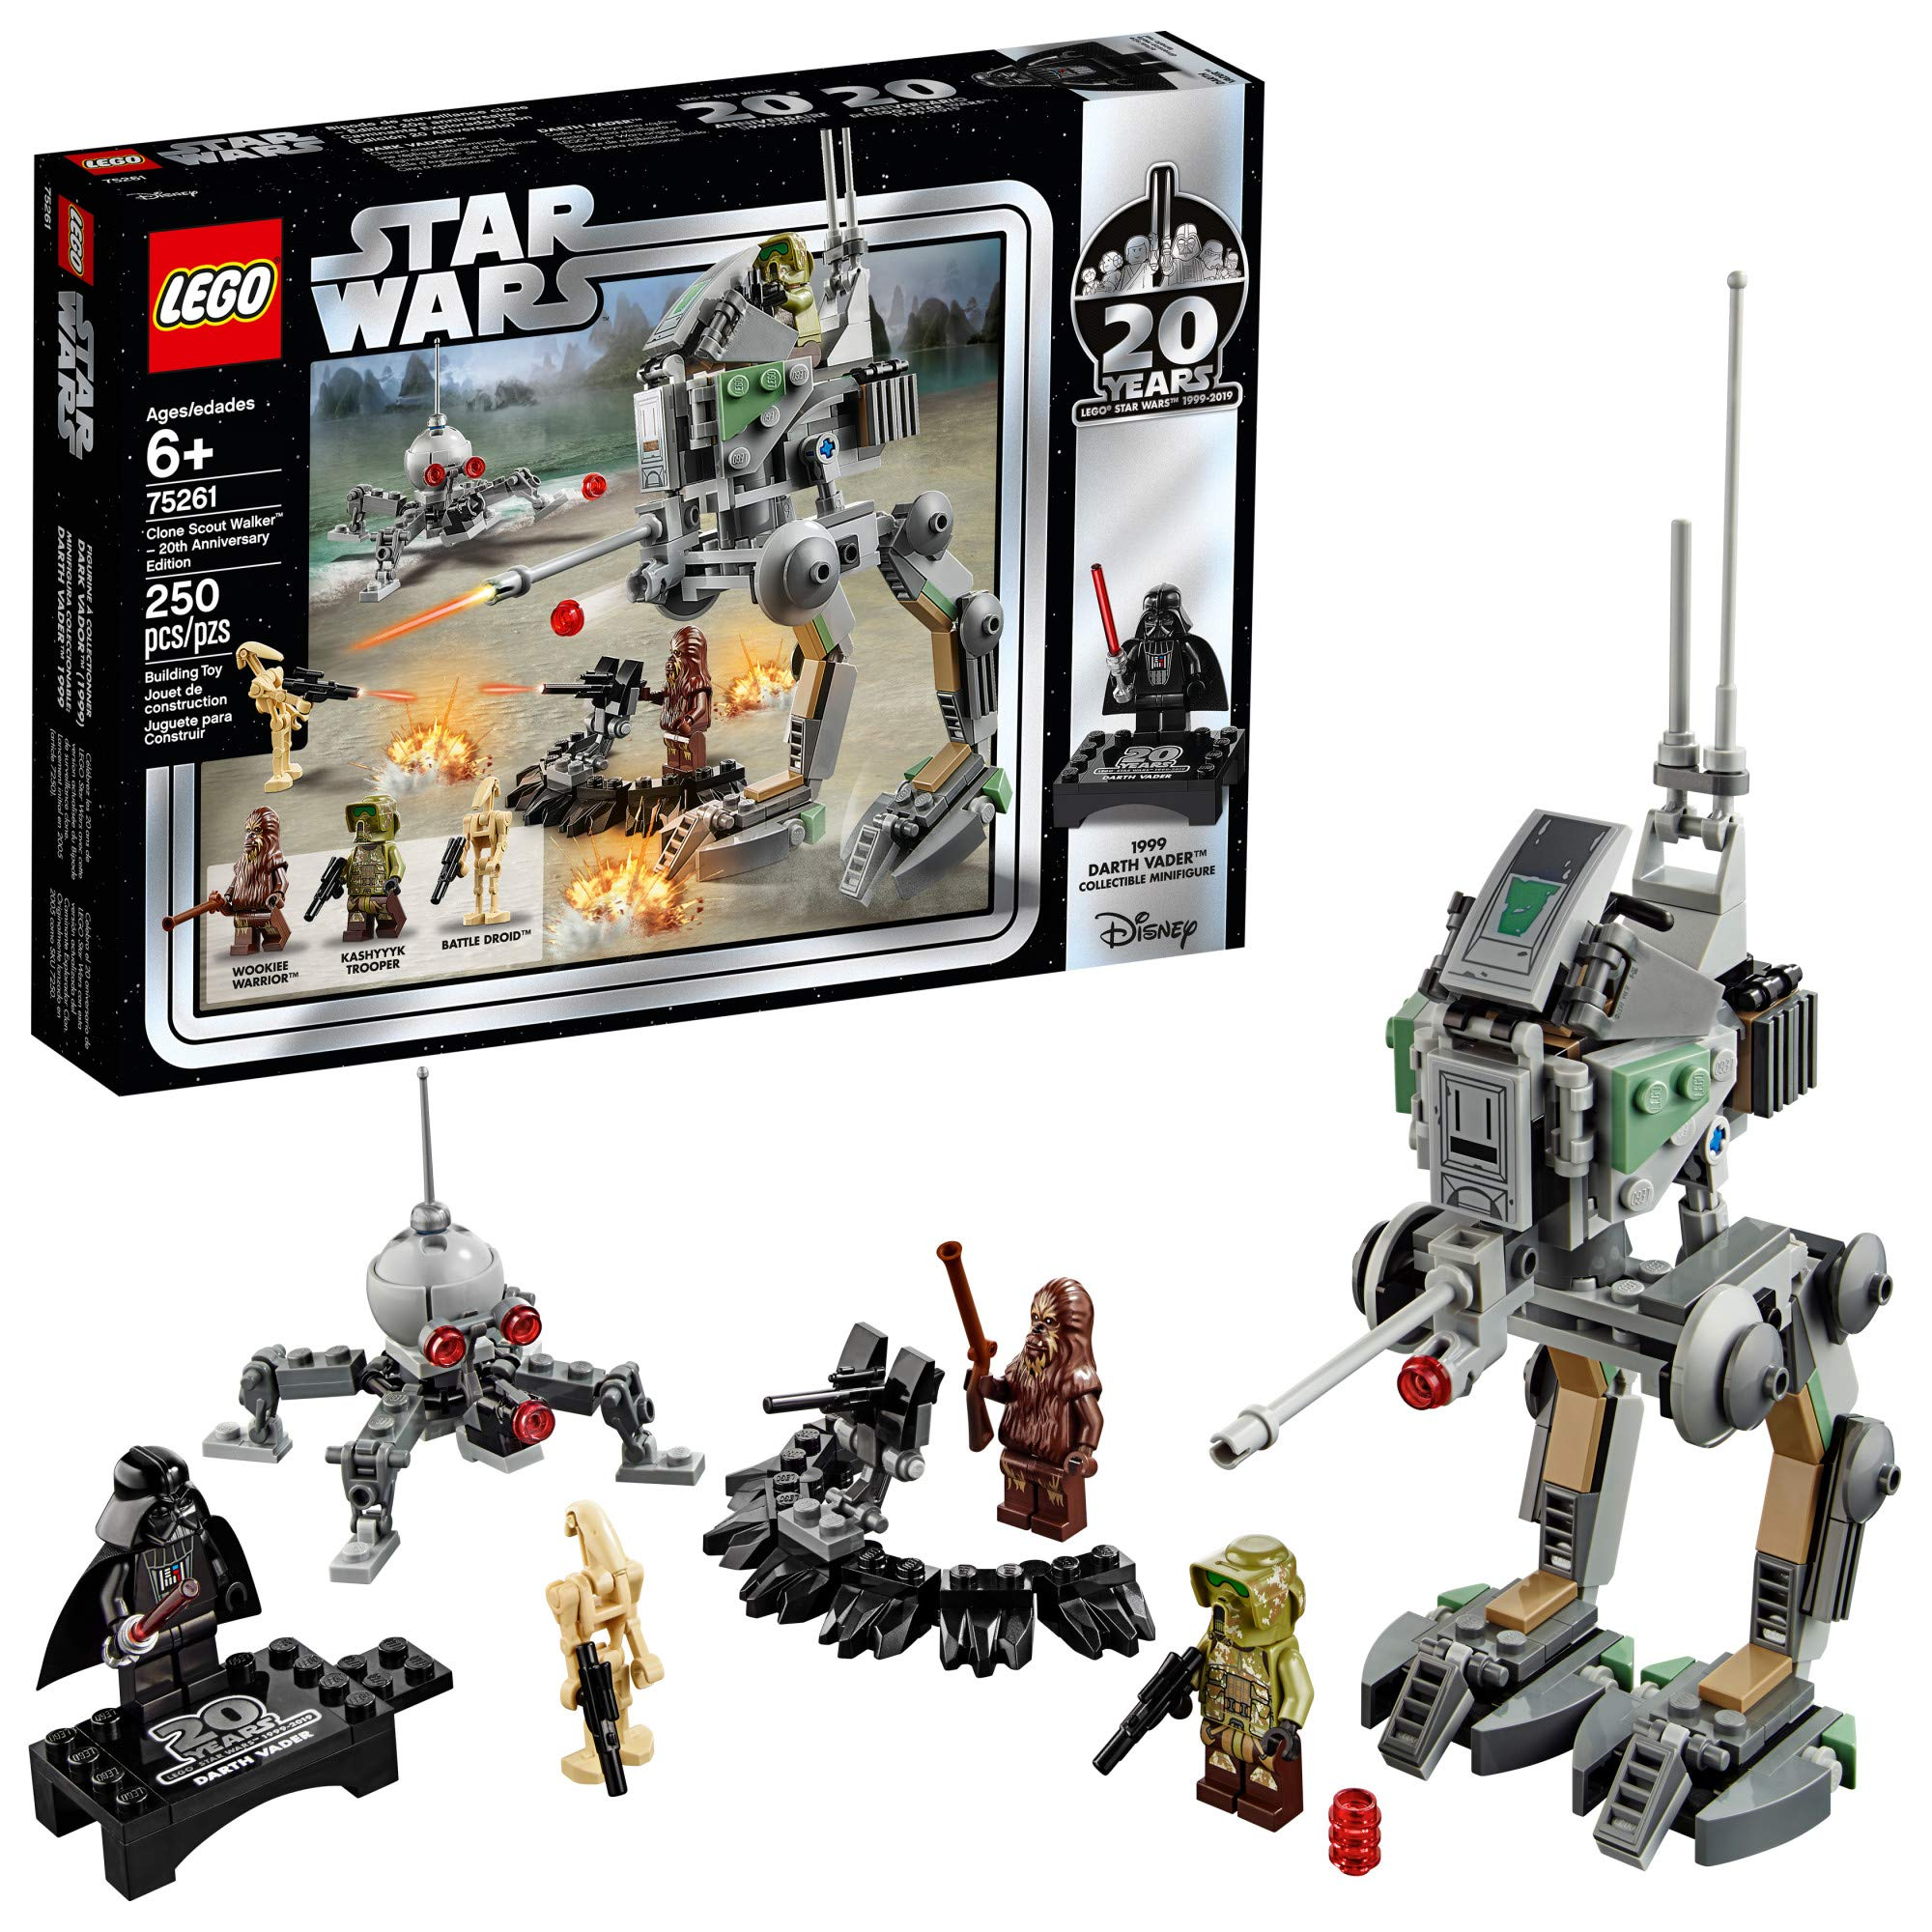 LEGO Star Wars Clone Scout Walker – 20th Anniversary Edition 75261 Building Kit (250 Pieces) (Discontinued by Manufacturer)